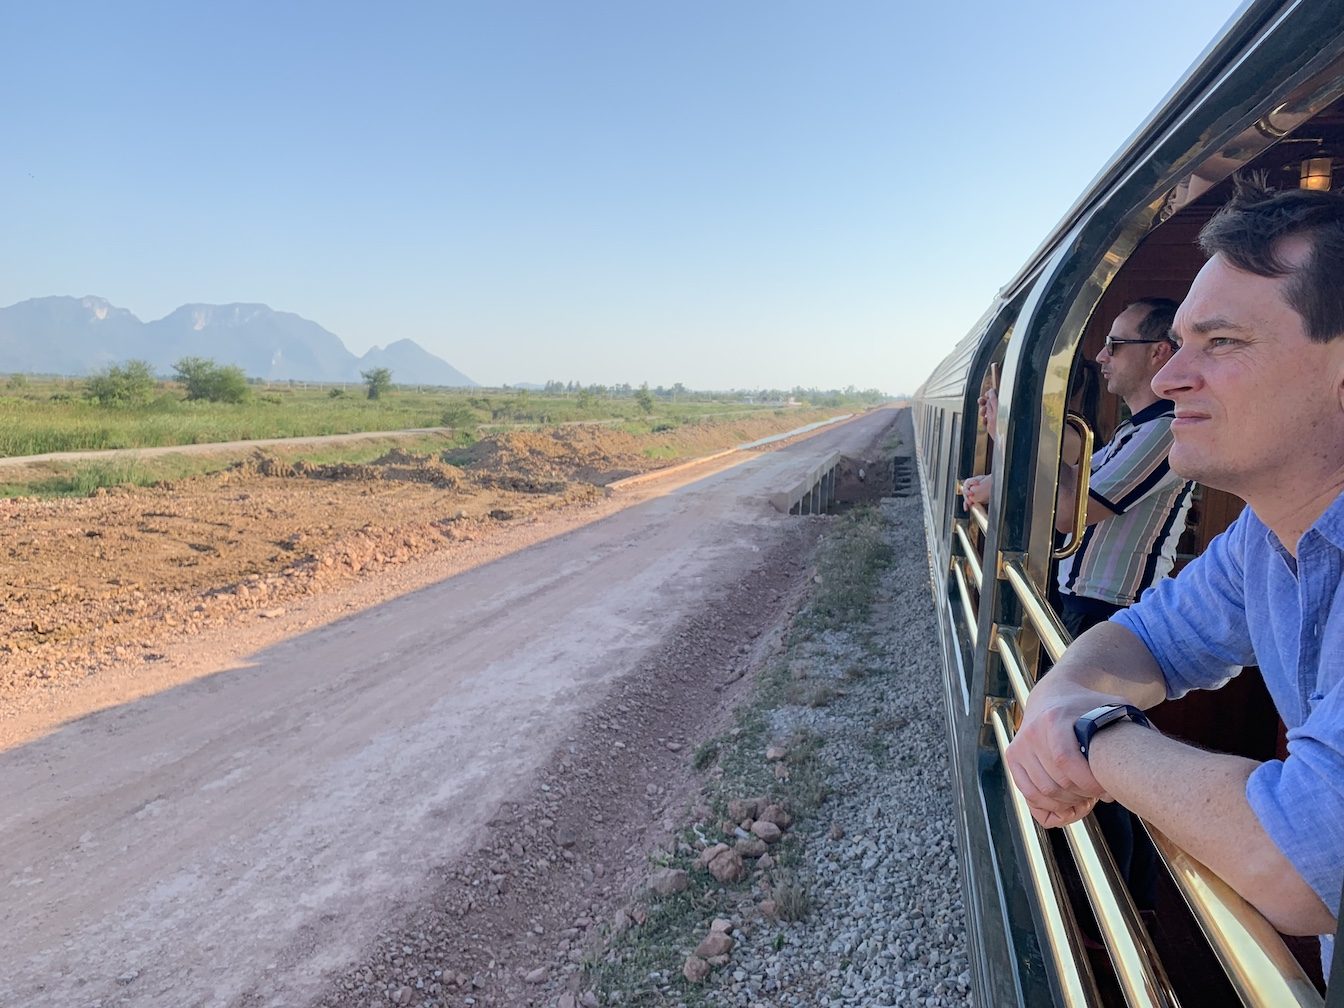 Looking out of Eastern & Oriental Express observation car